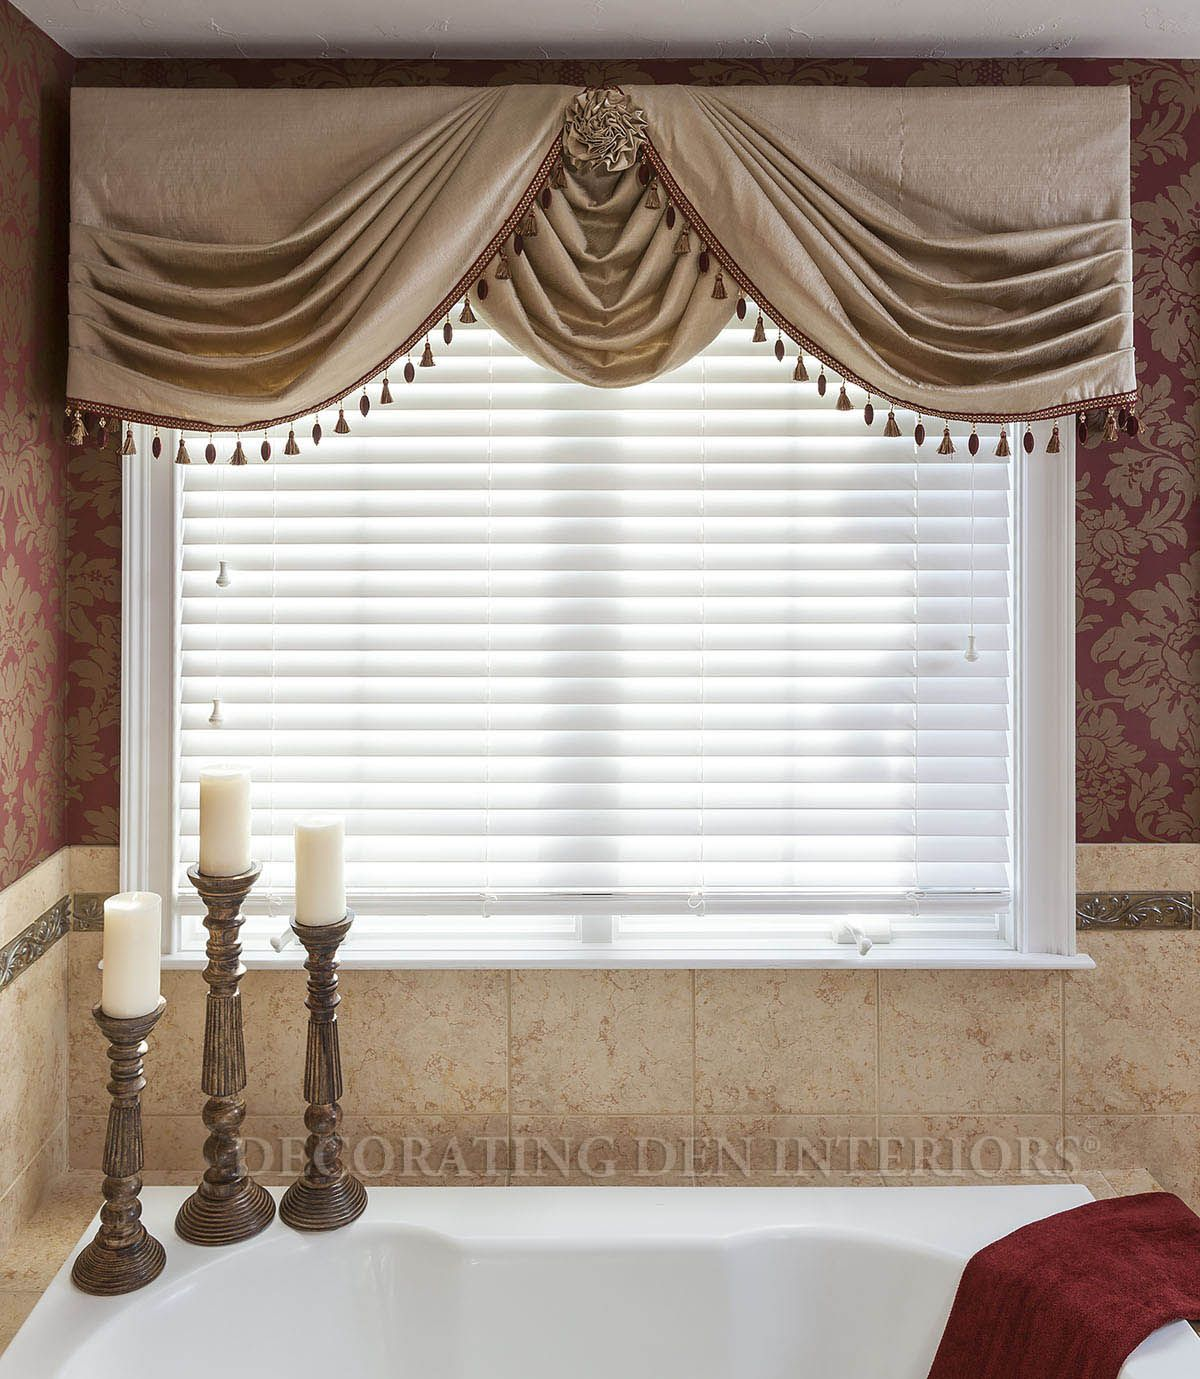 curtain valances valance of and sale room gorgeous blue amusing beautiful curtains swag bathroom living swags for walmart